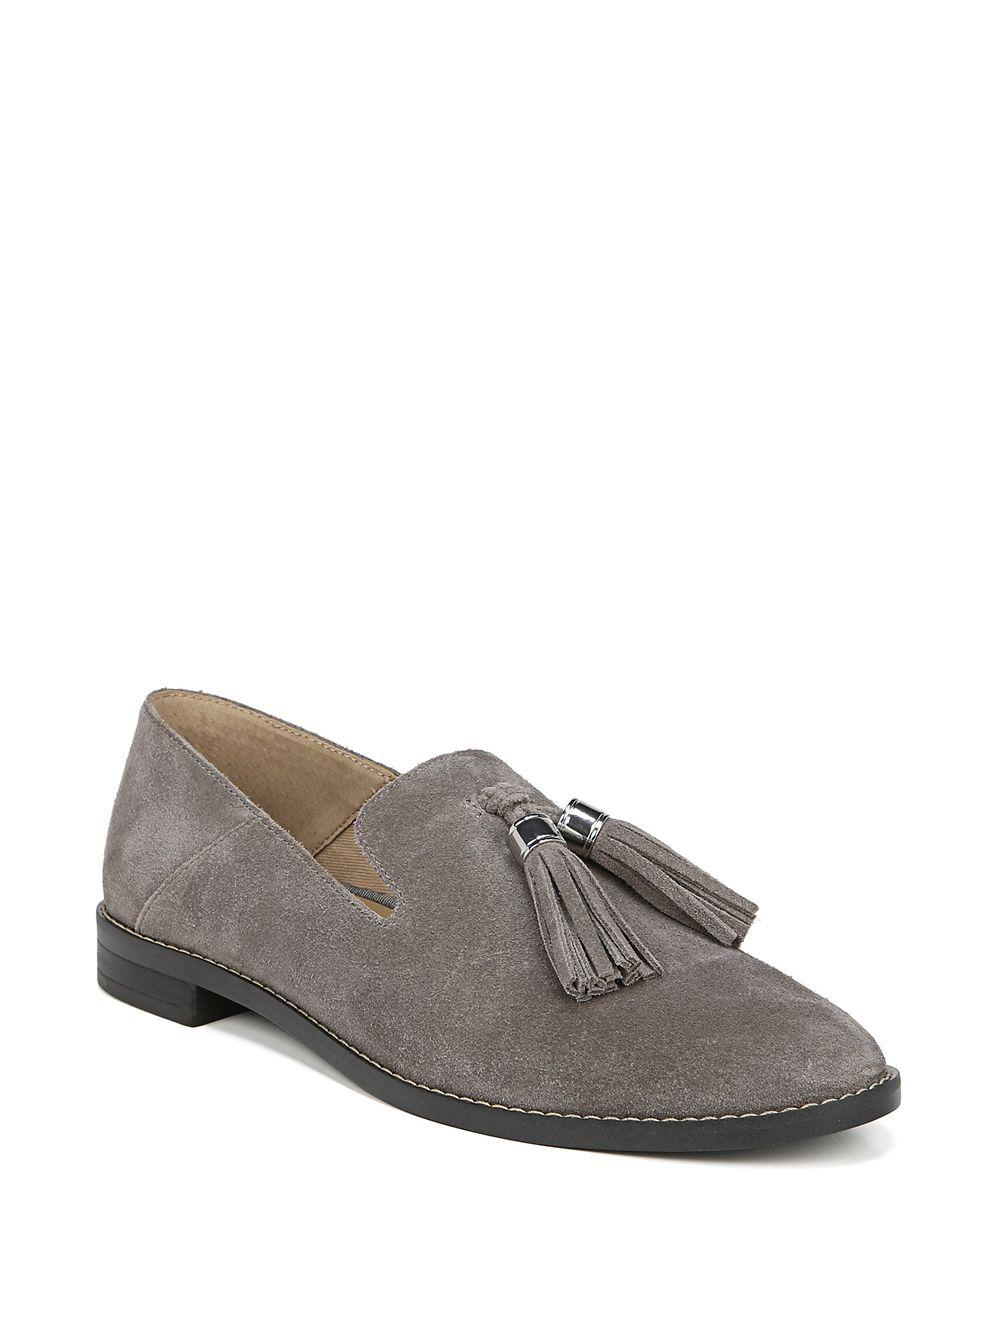 d659426f505 Lyst - Franco Sarto Hadden Suede Loafers in Gray - Save ...